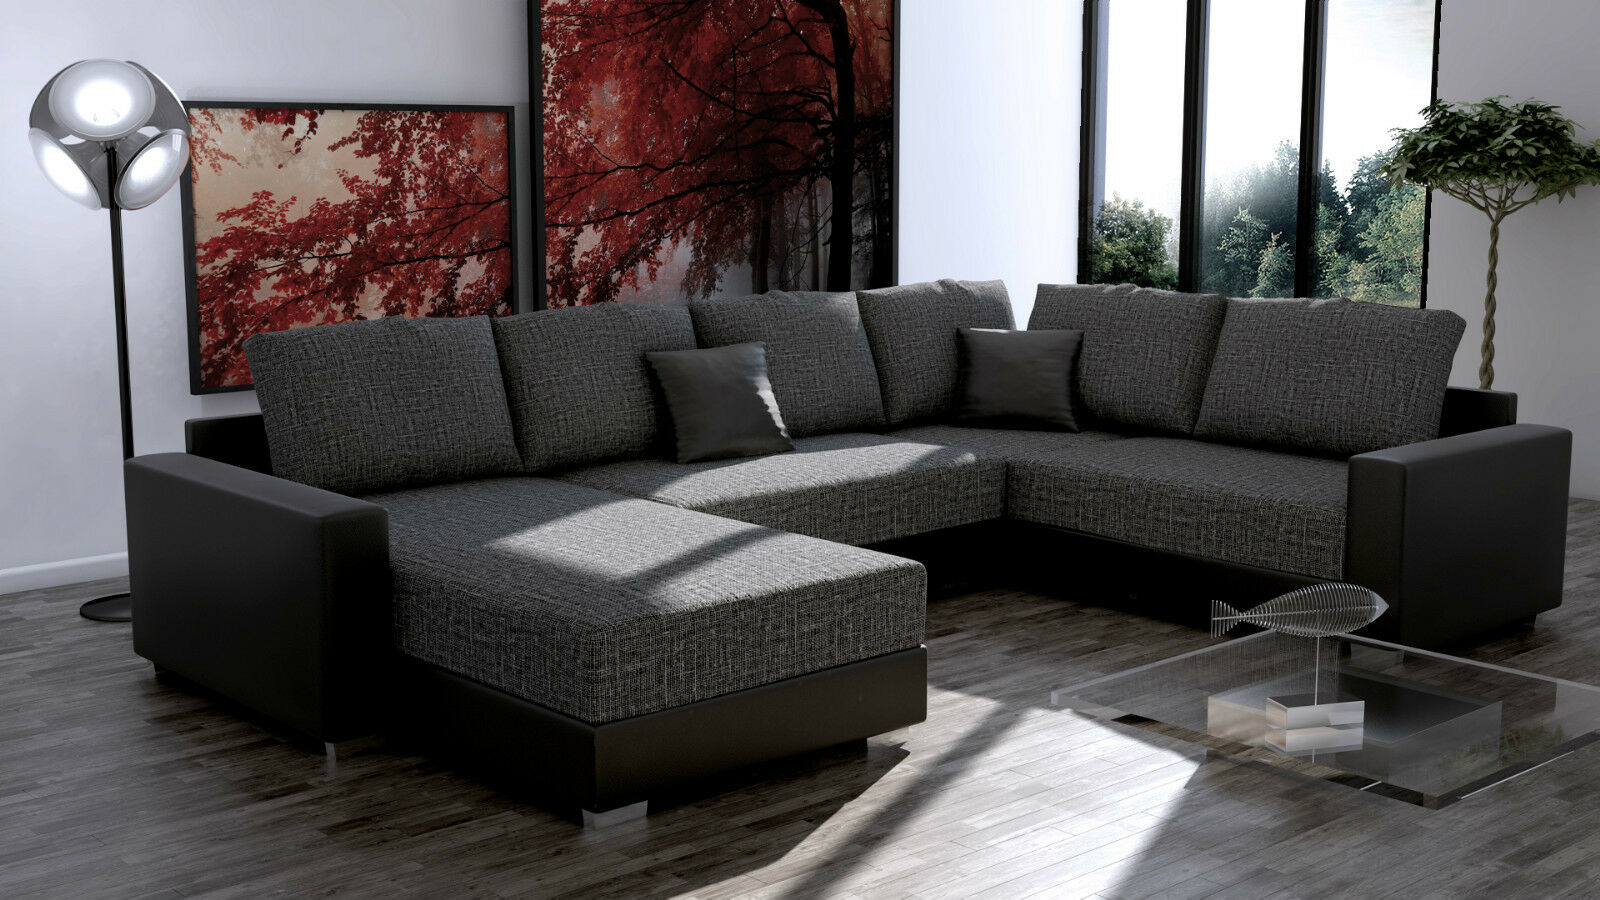 couch garnitur ecksofa sofagarnitur sofa sty 3 1. Black Bedroom Furniture Sets. Home Design Ideas